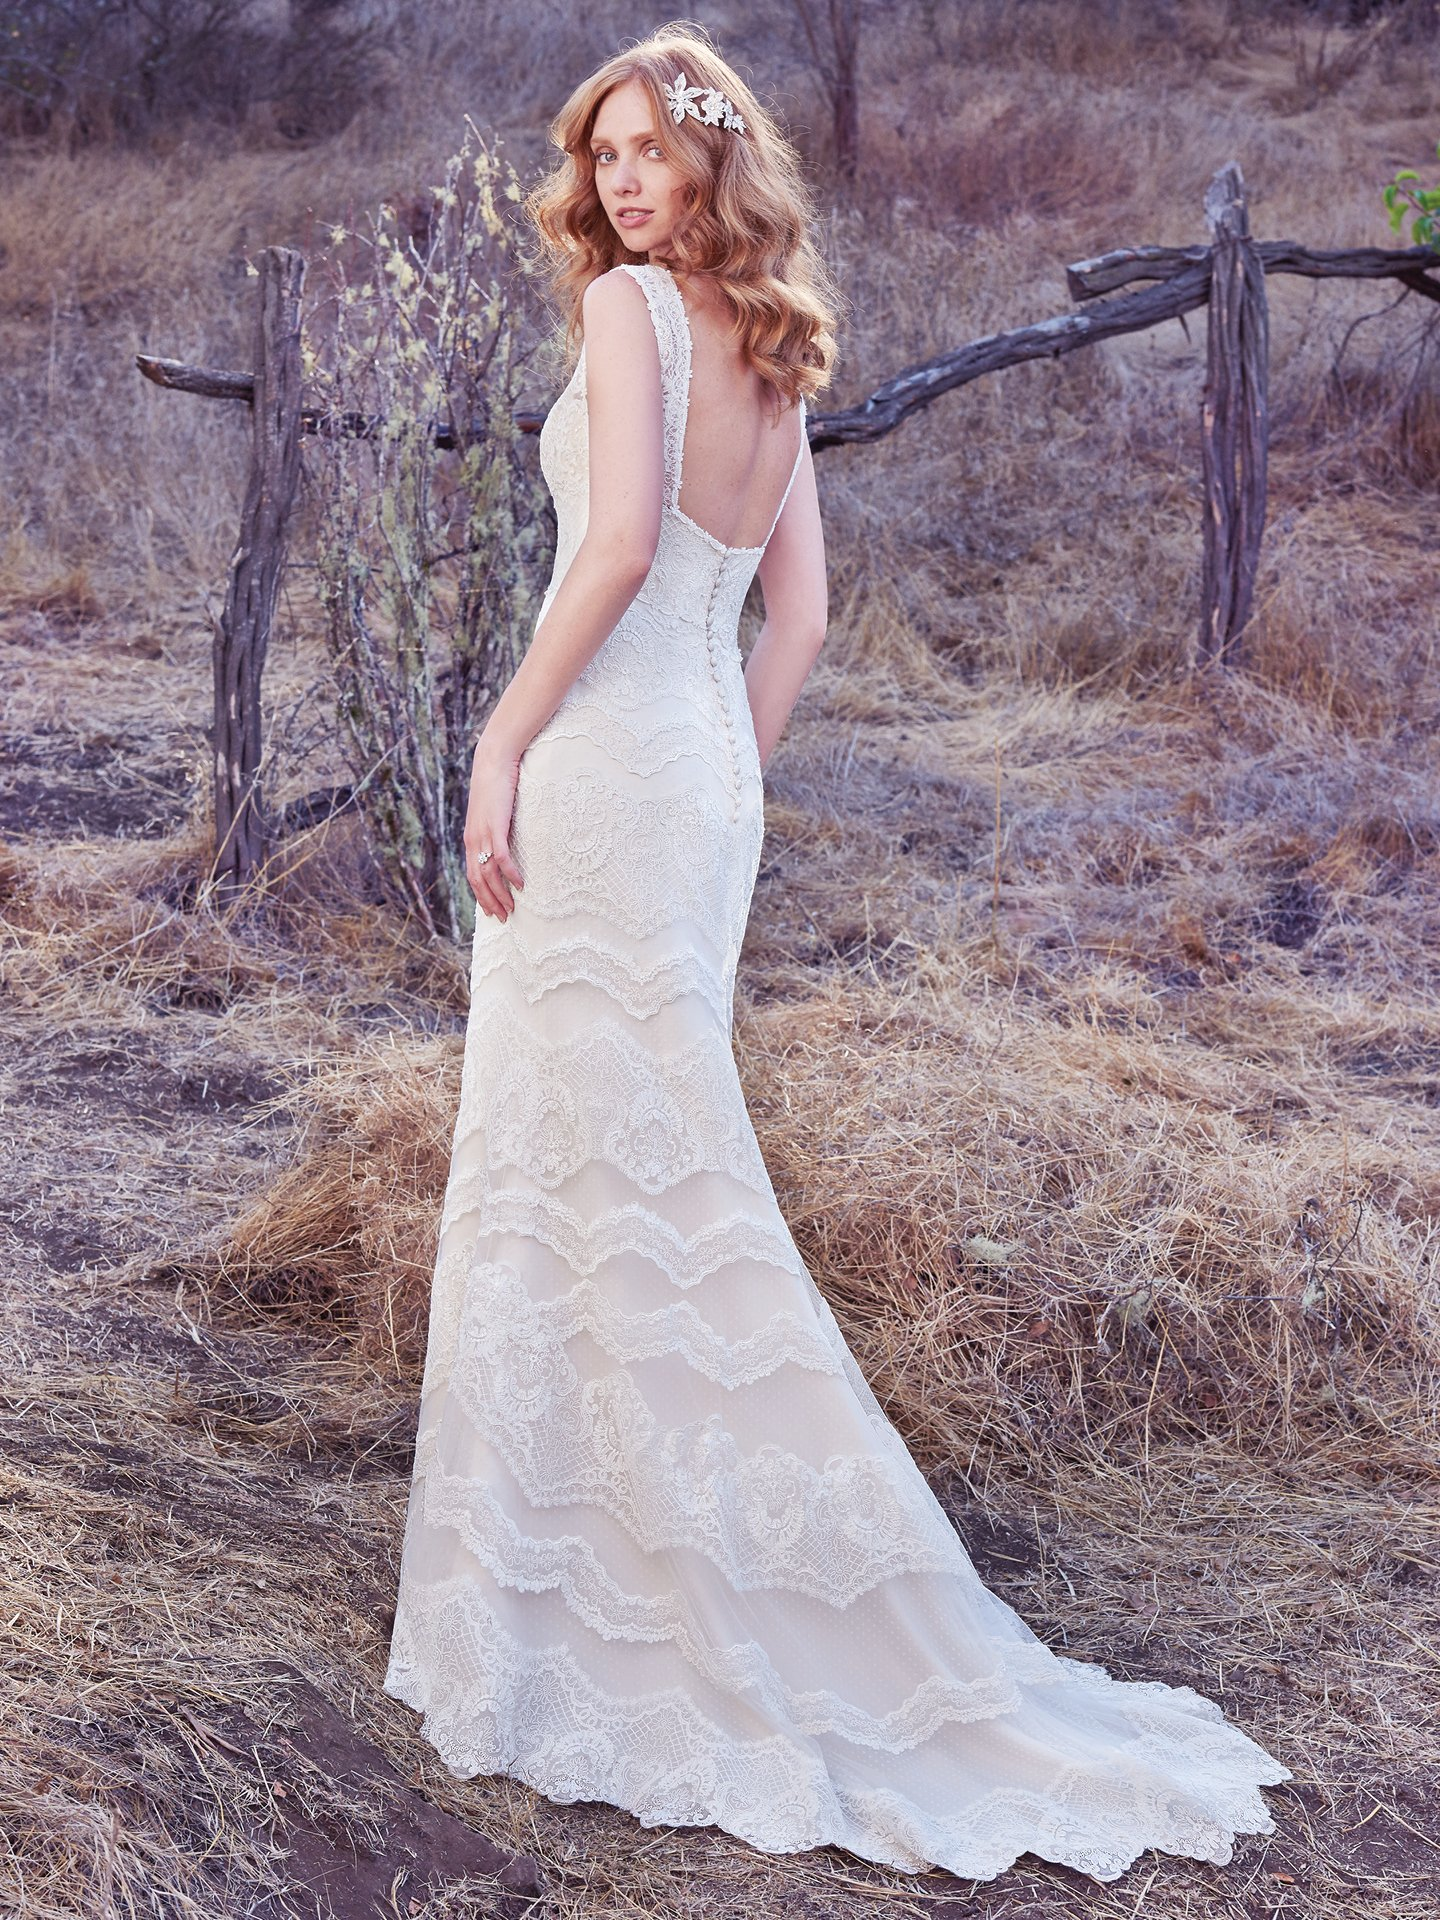 Ivory over Light Gold wedding dress by  Maggie Sottero. Colorful Wedding Dresses For The Bold Bride